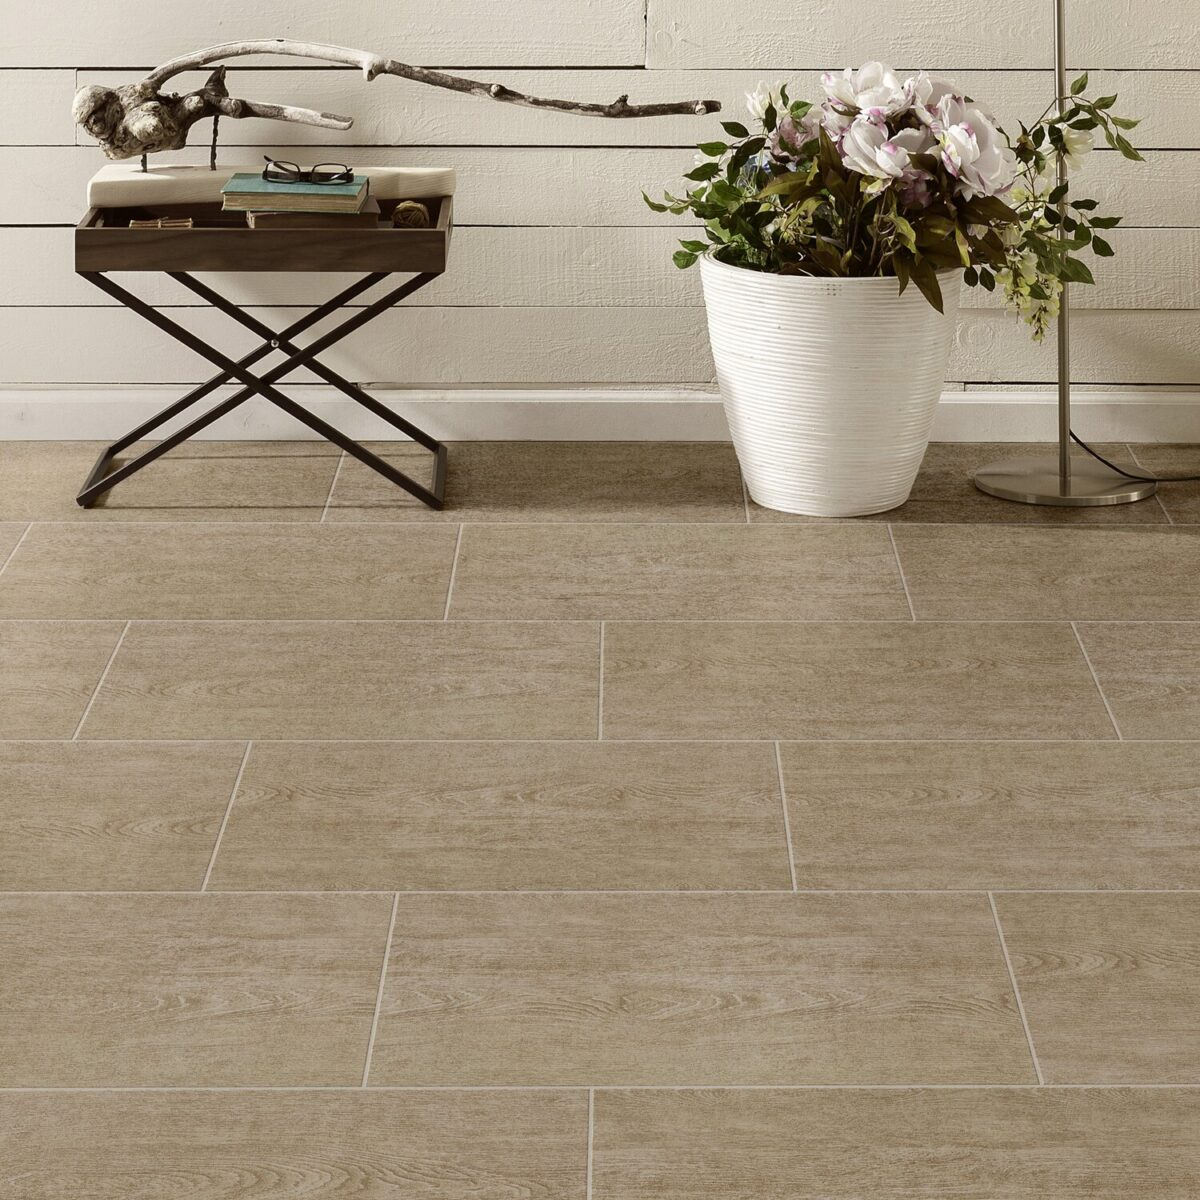 porcelain-stoneware-how-to-know-if-it-is-of-quality